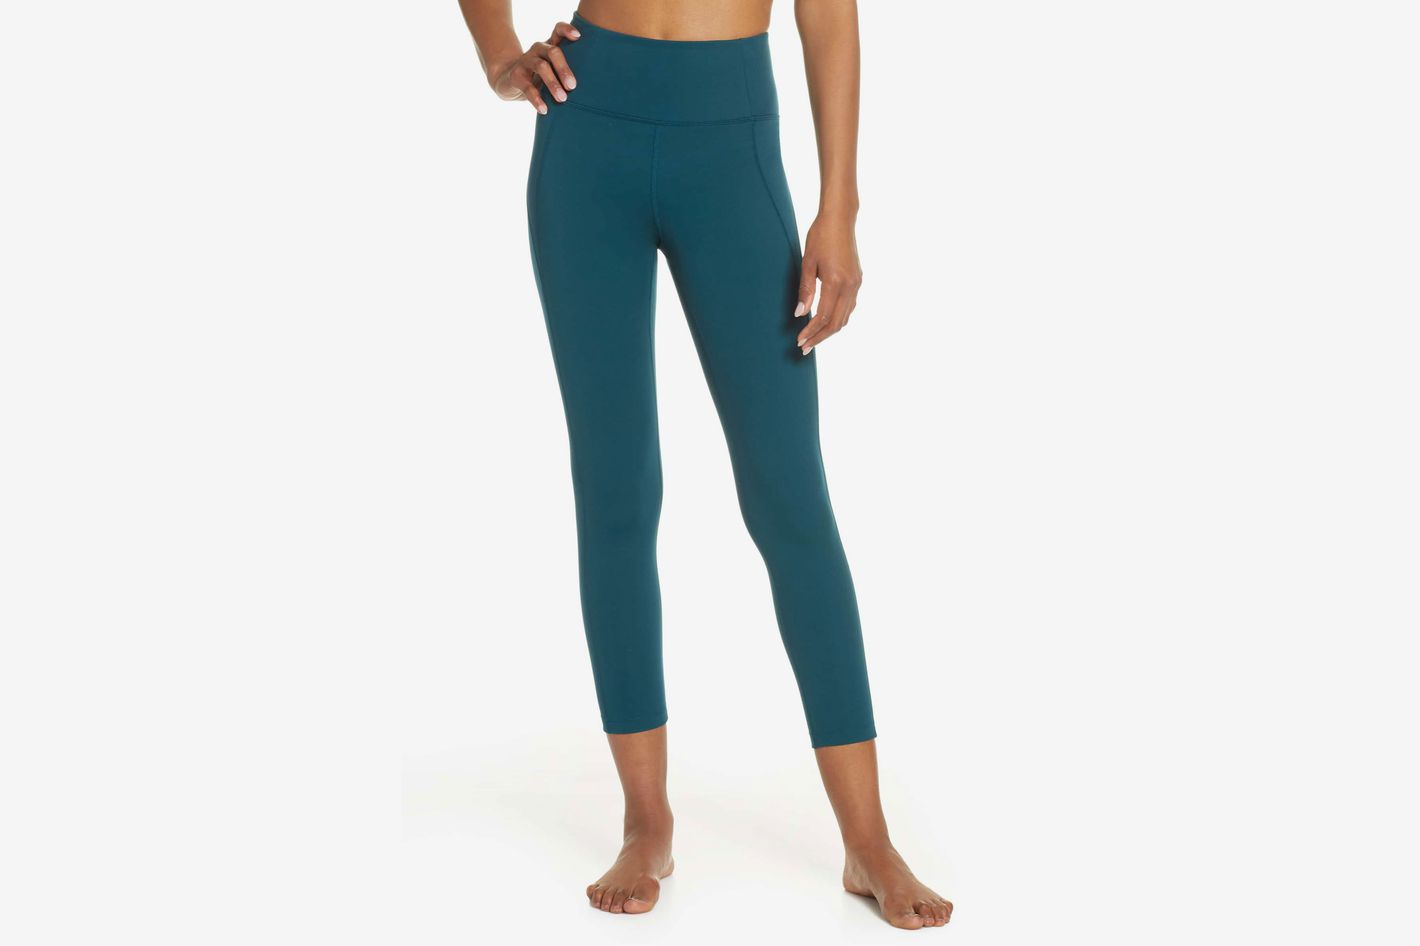 Girlfriend Collective High Waist 7/8 Leggings